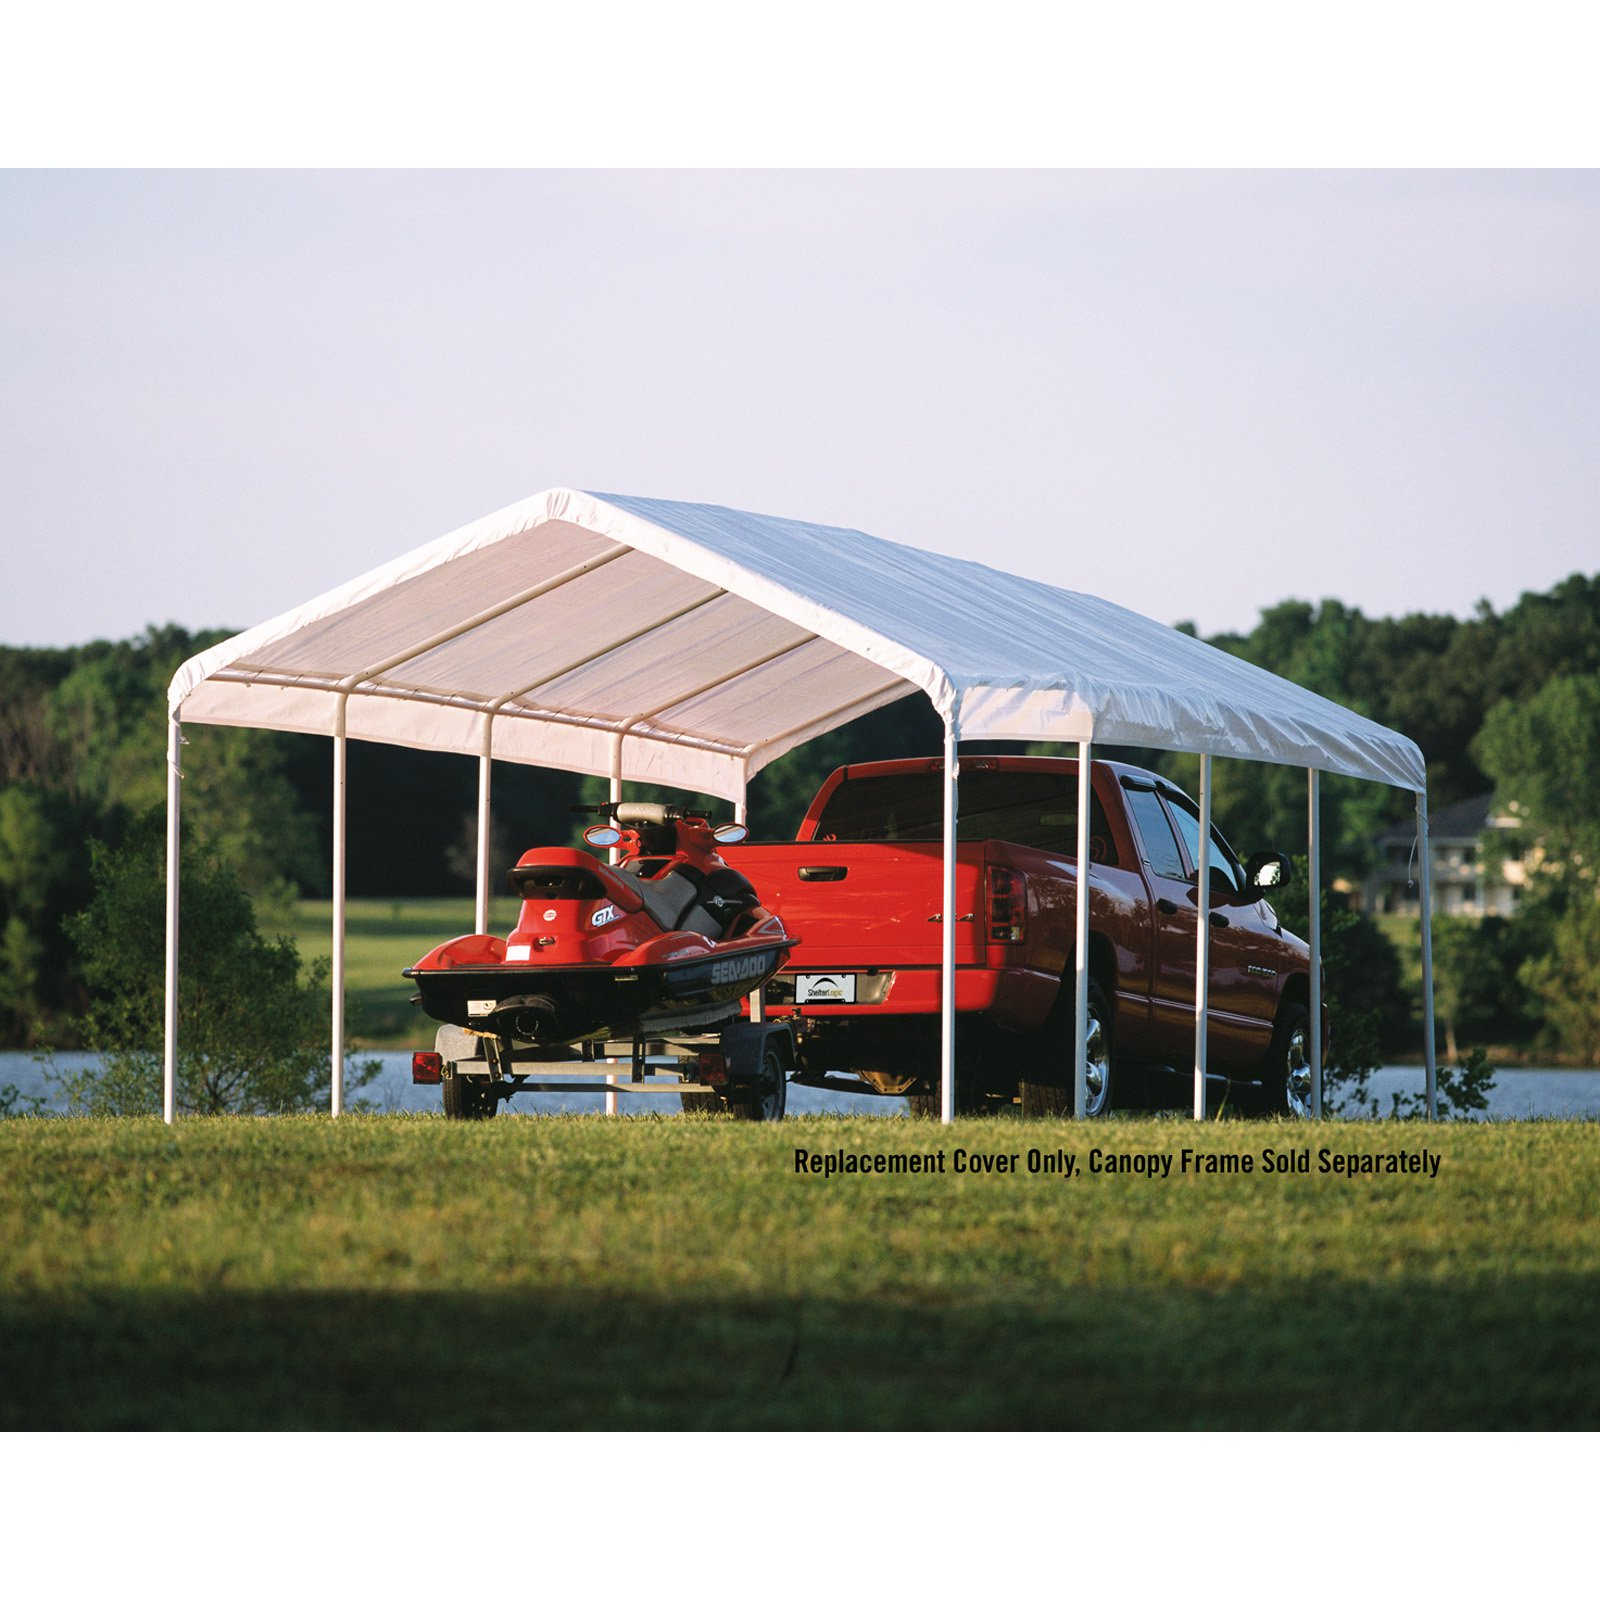 "Shelterlogic 12' x 26' White Canopy Replacement Cover Fits 2"" Frame"